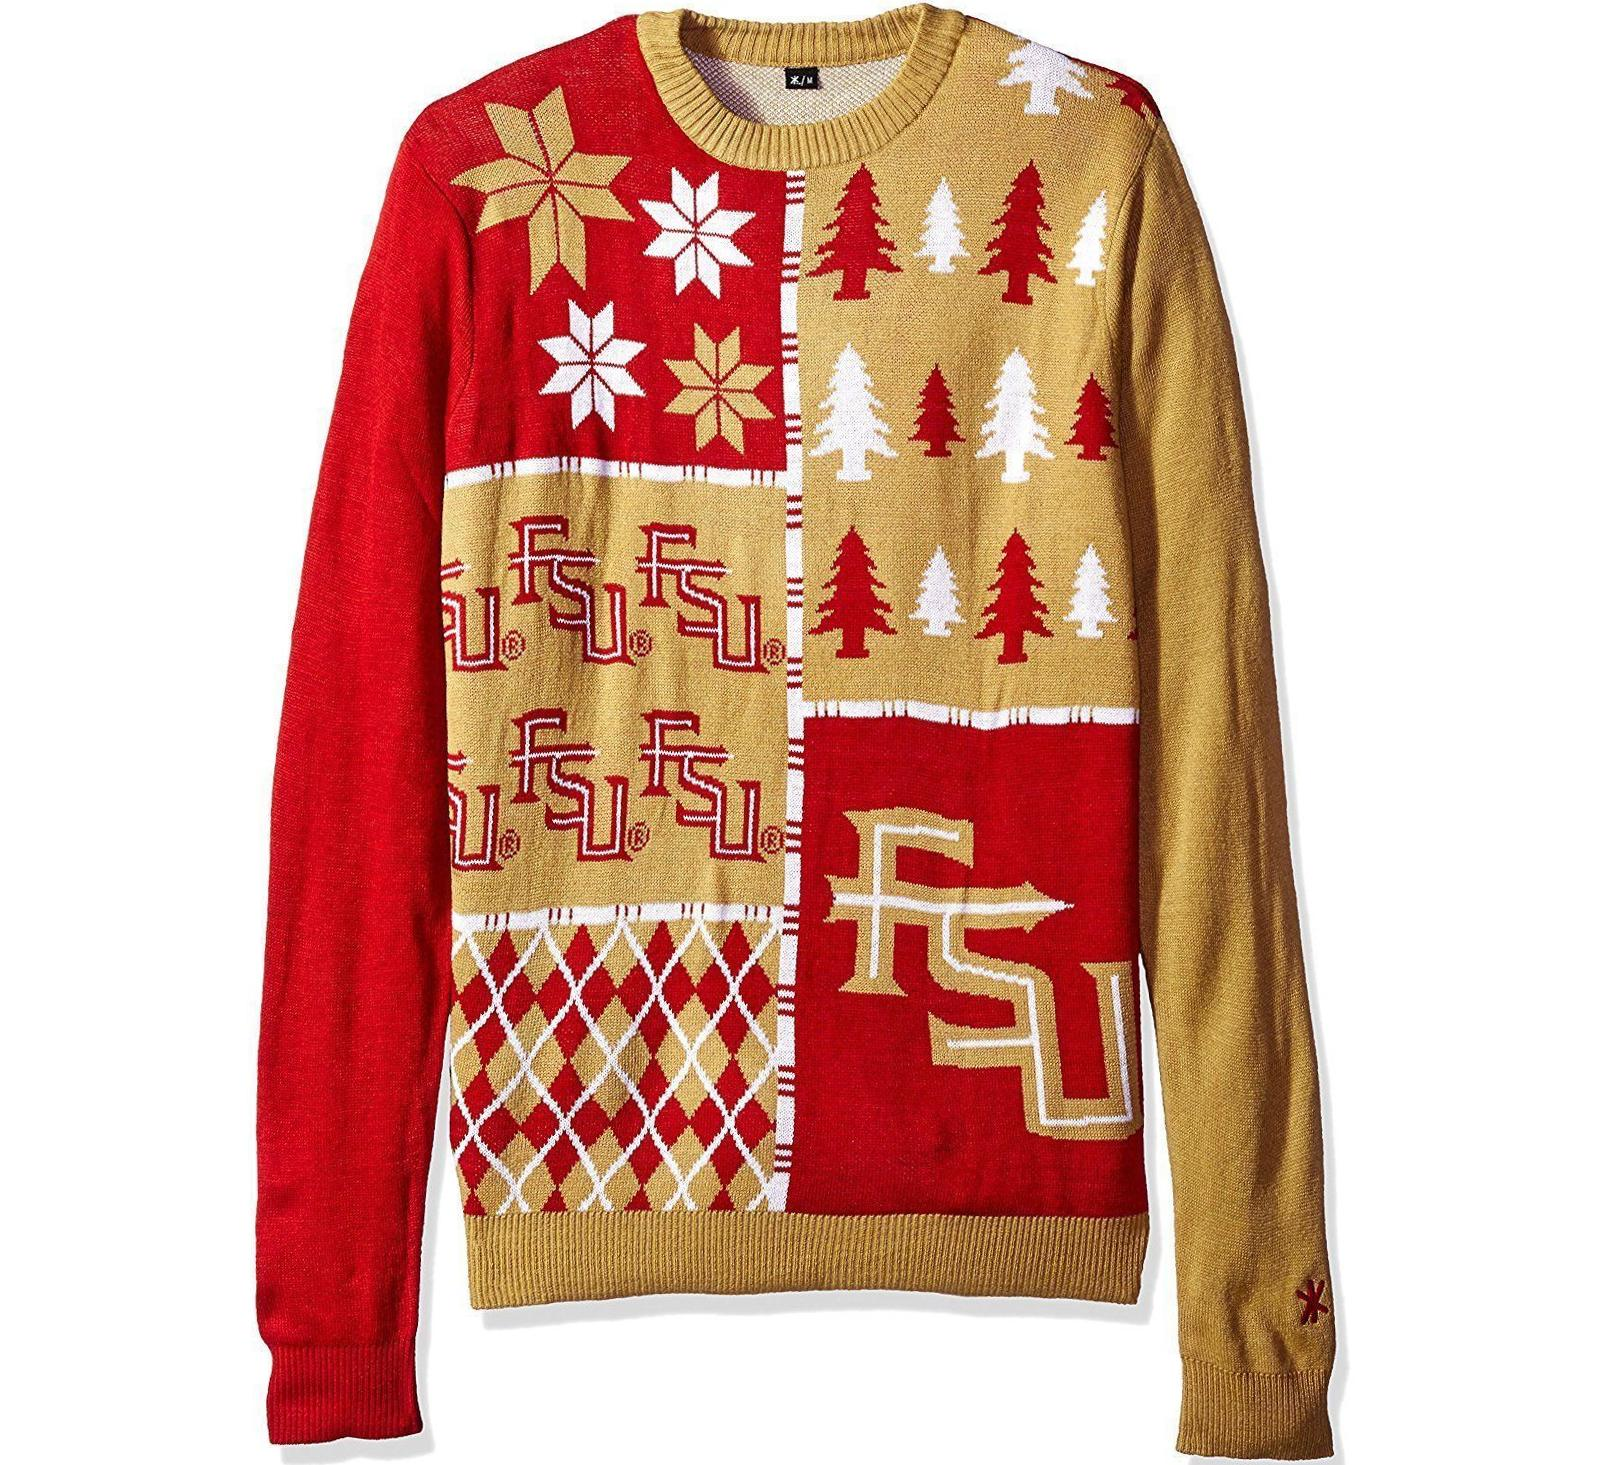 Seminoles Retro College Sweater